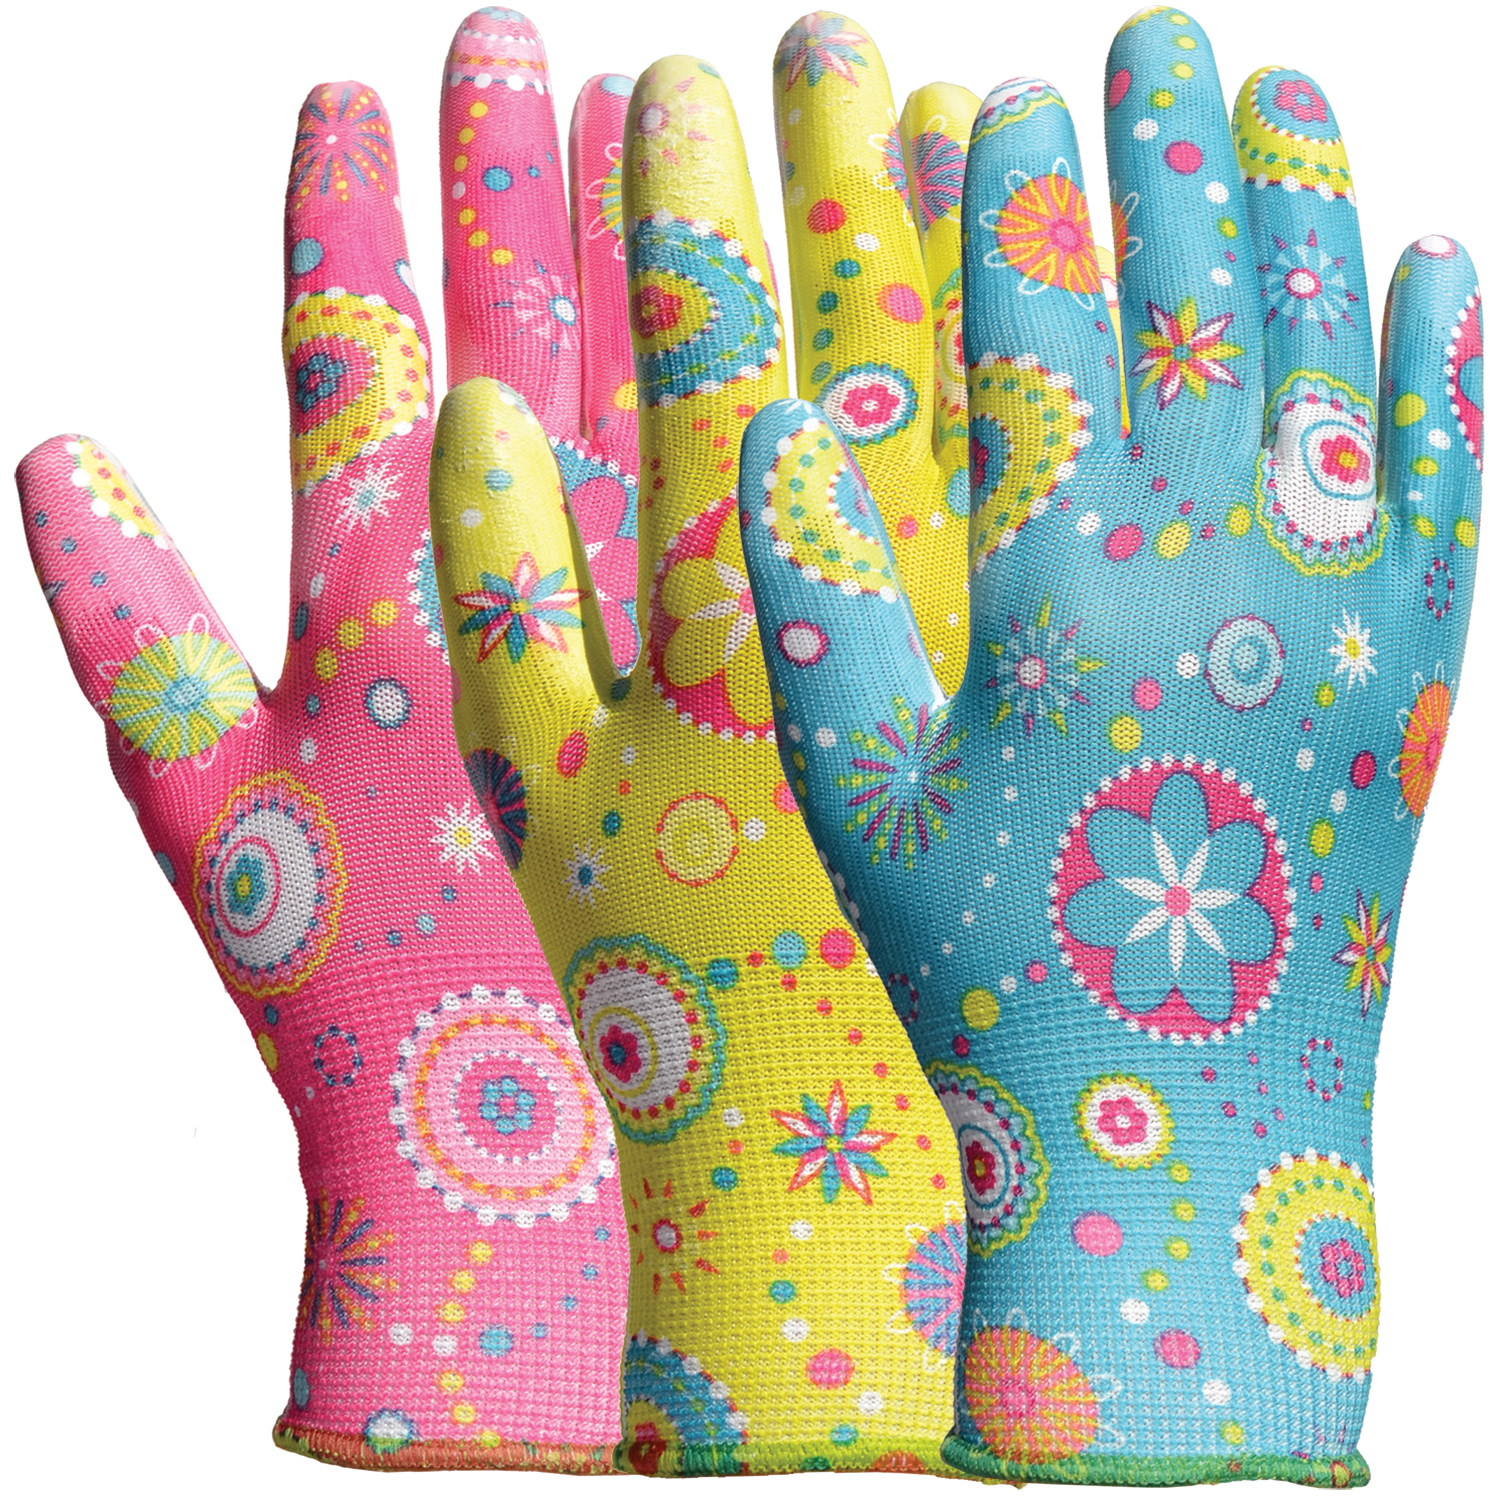 Bellingham EXCEPTIONALLY COOL™ Patterned Glove